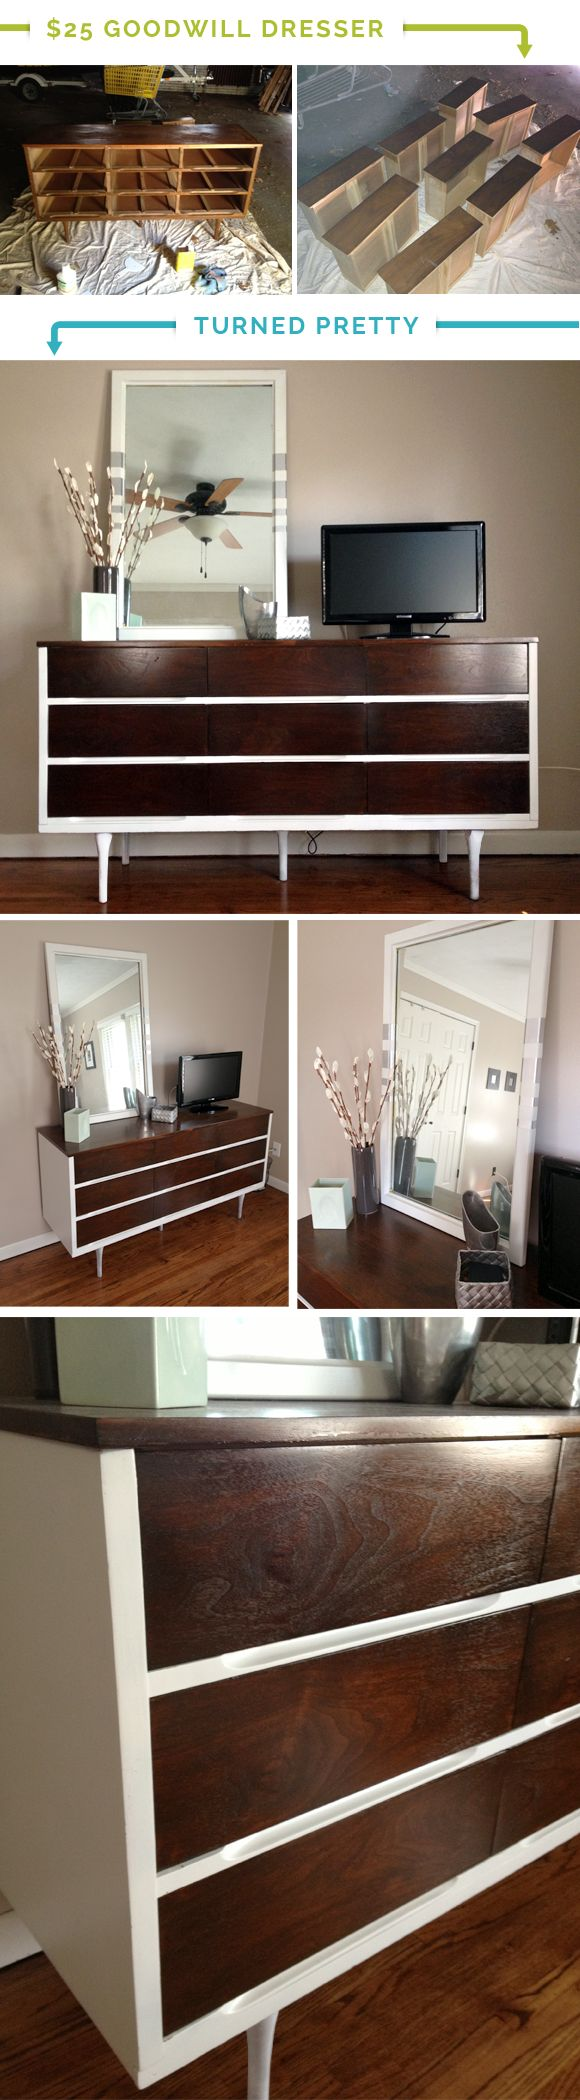 This has to be the nicest transformation I've seen by taking a $25 Goodwill dresser and making it pretty. Look at how gorgeous that wood turned out! But love how she painted some to give it modern lines. Fab.